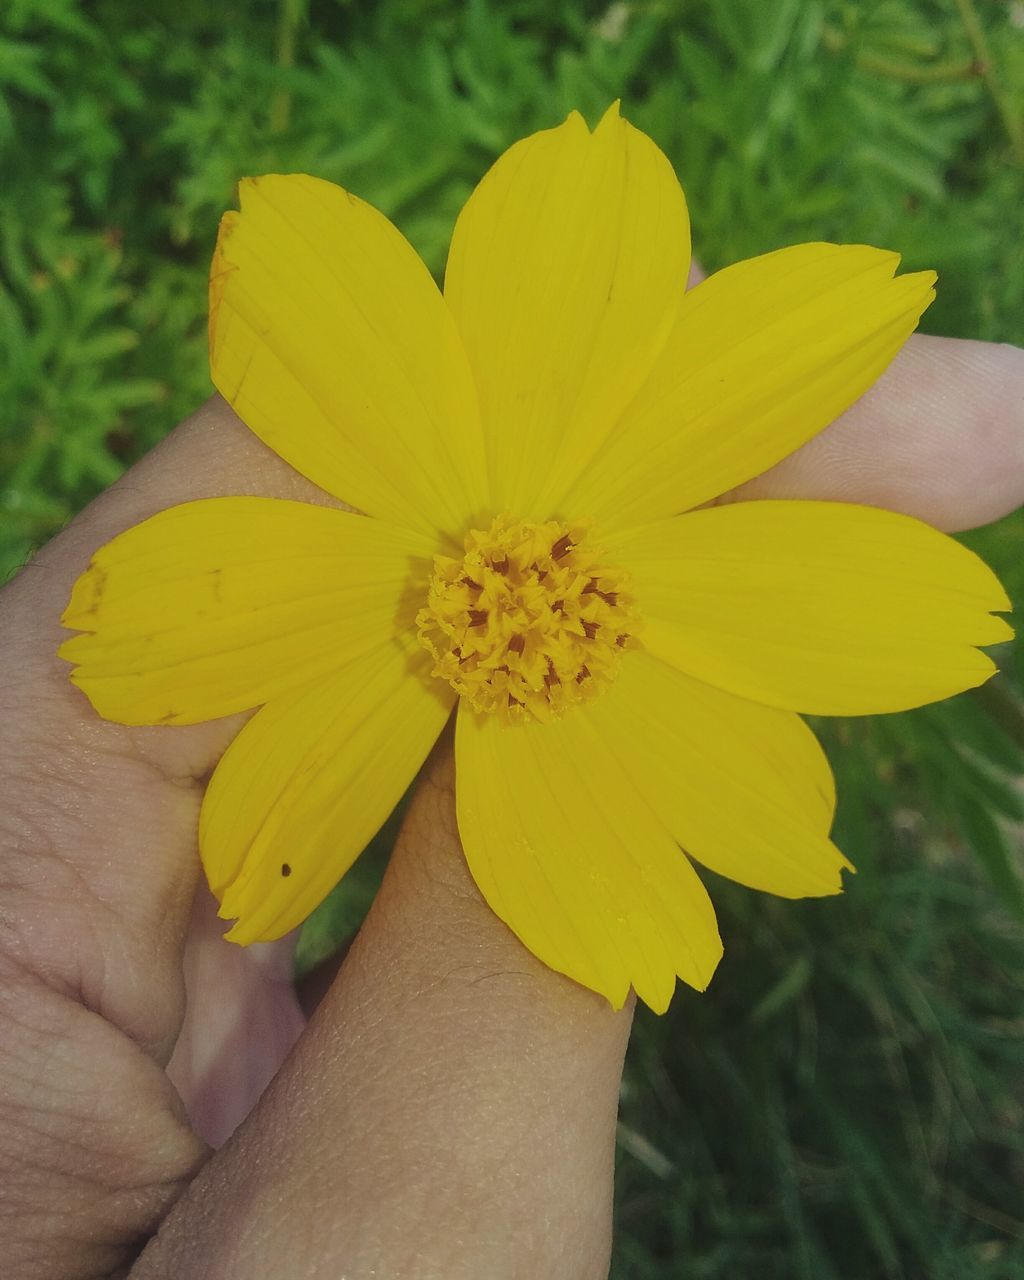 flower, human hand, human body part, yellow, one person, petal, holding, fragility, nature, flower head, beauty in nature, real people, freshness, close-up, outdoors, day, plant, people